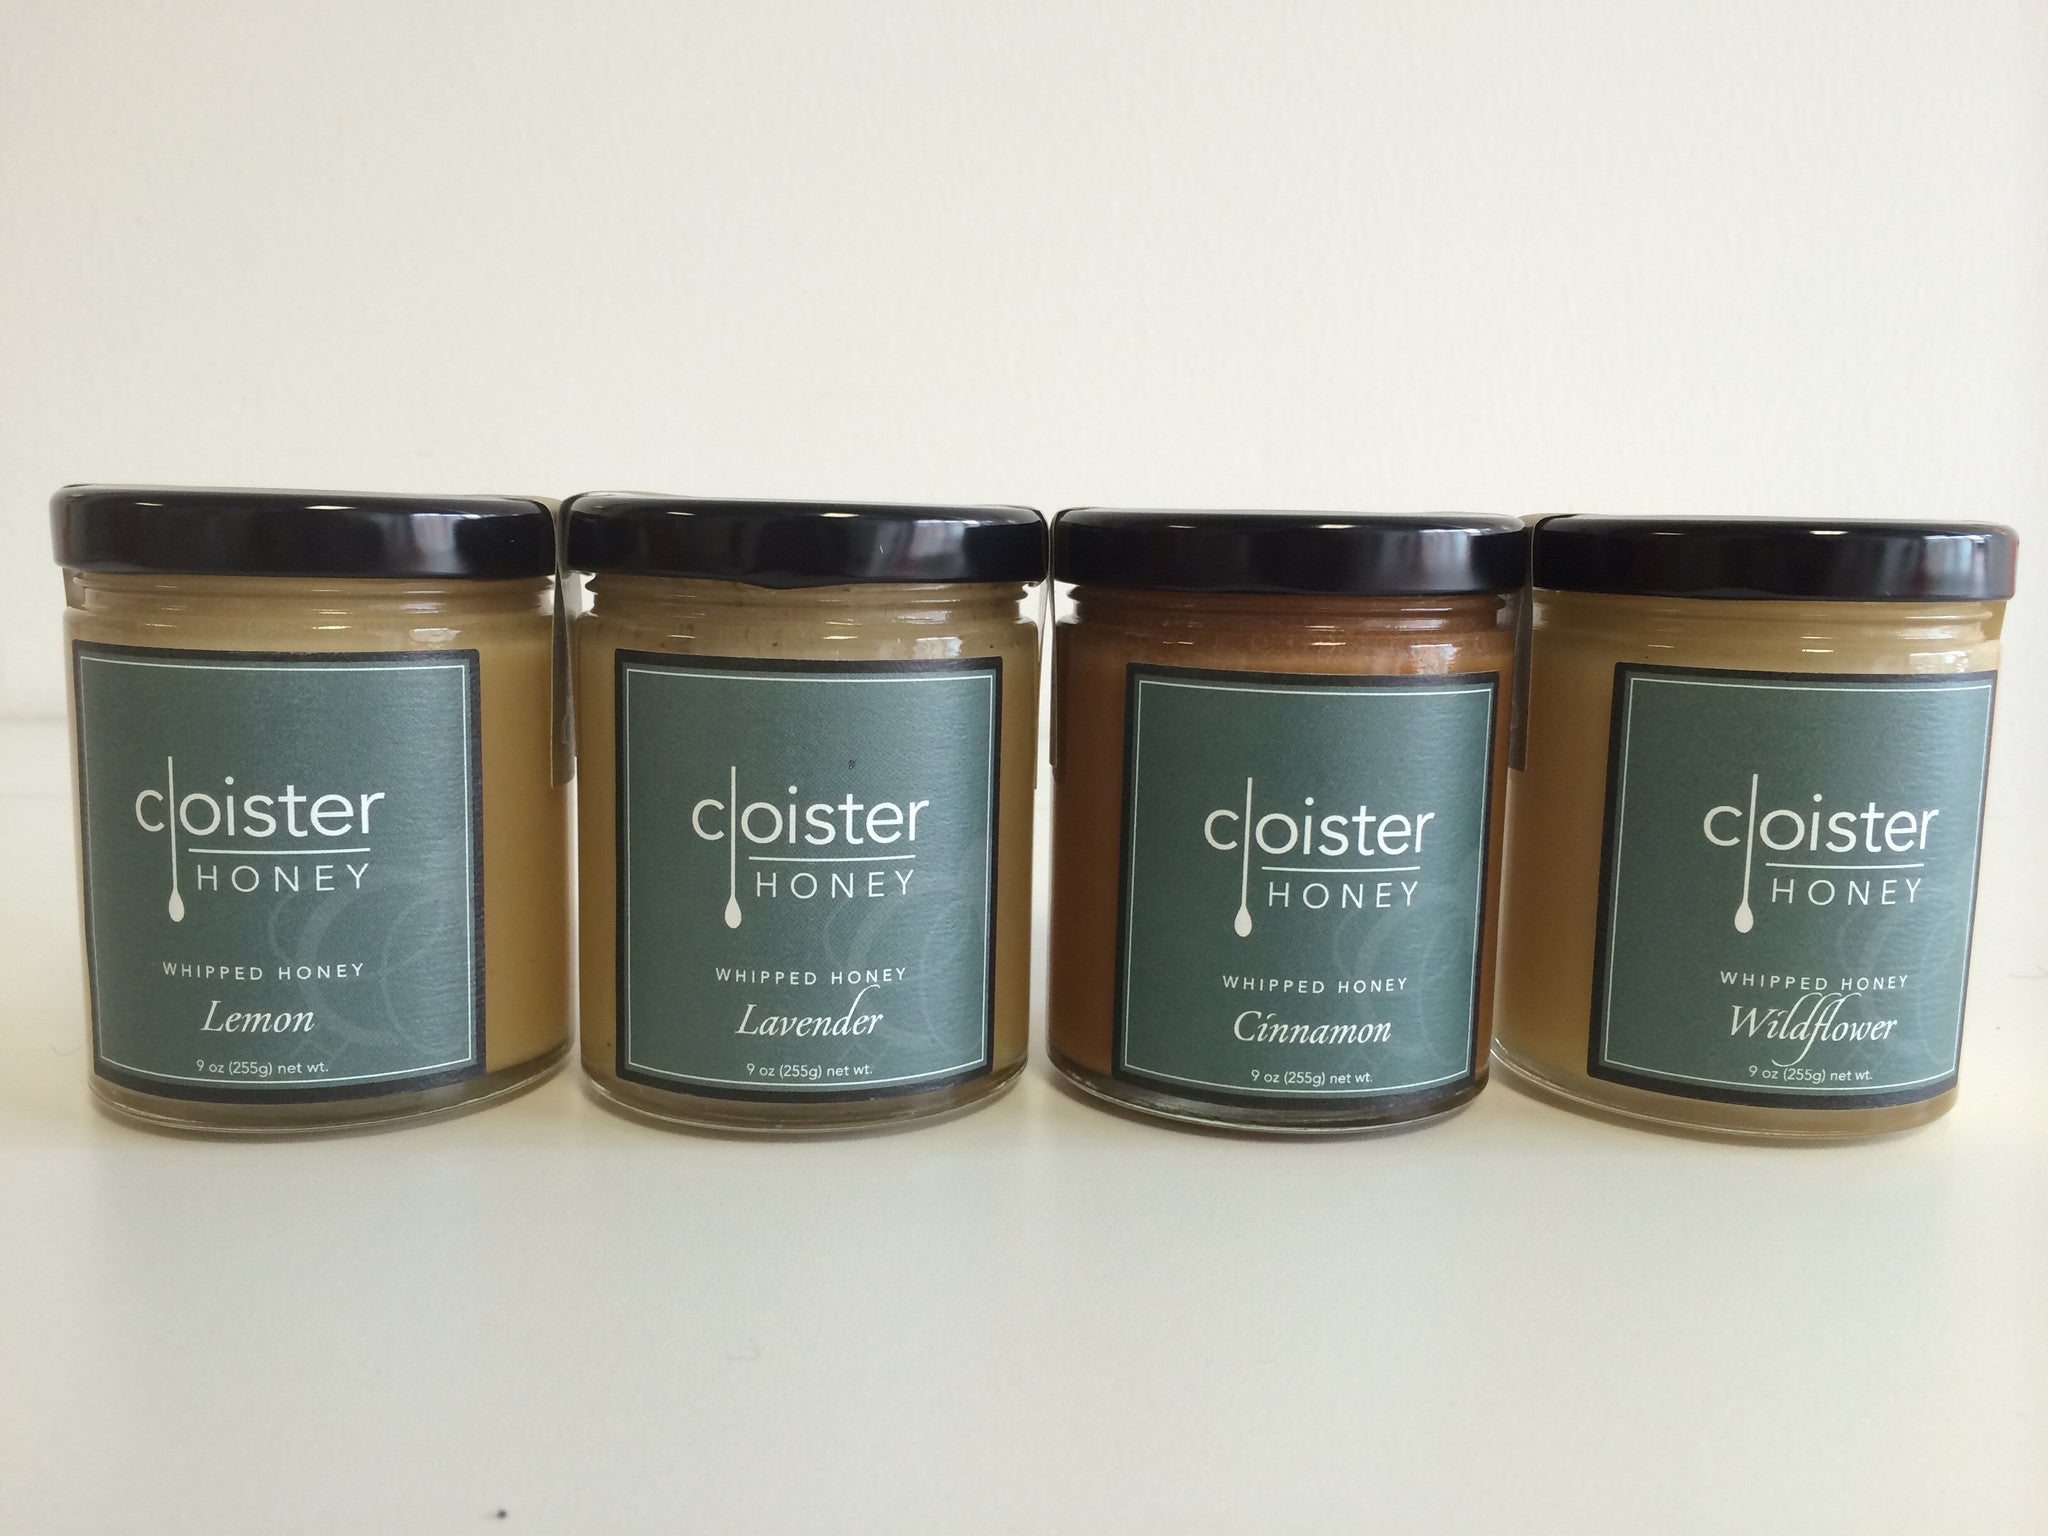 whipped honey - Cloister Honey